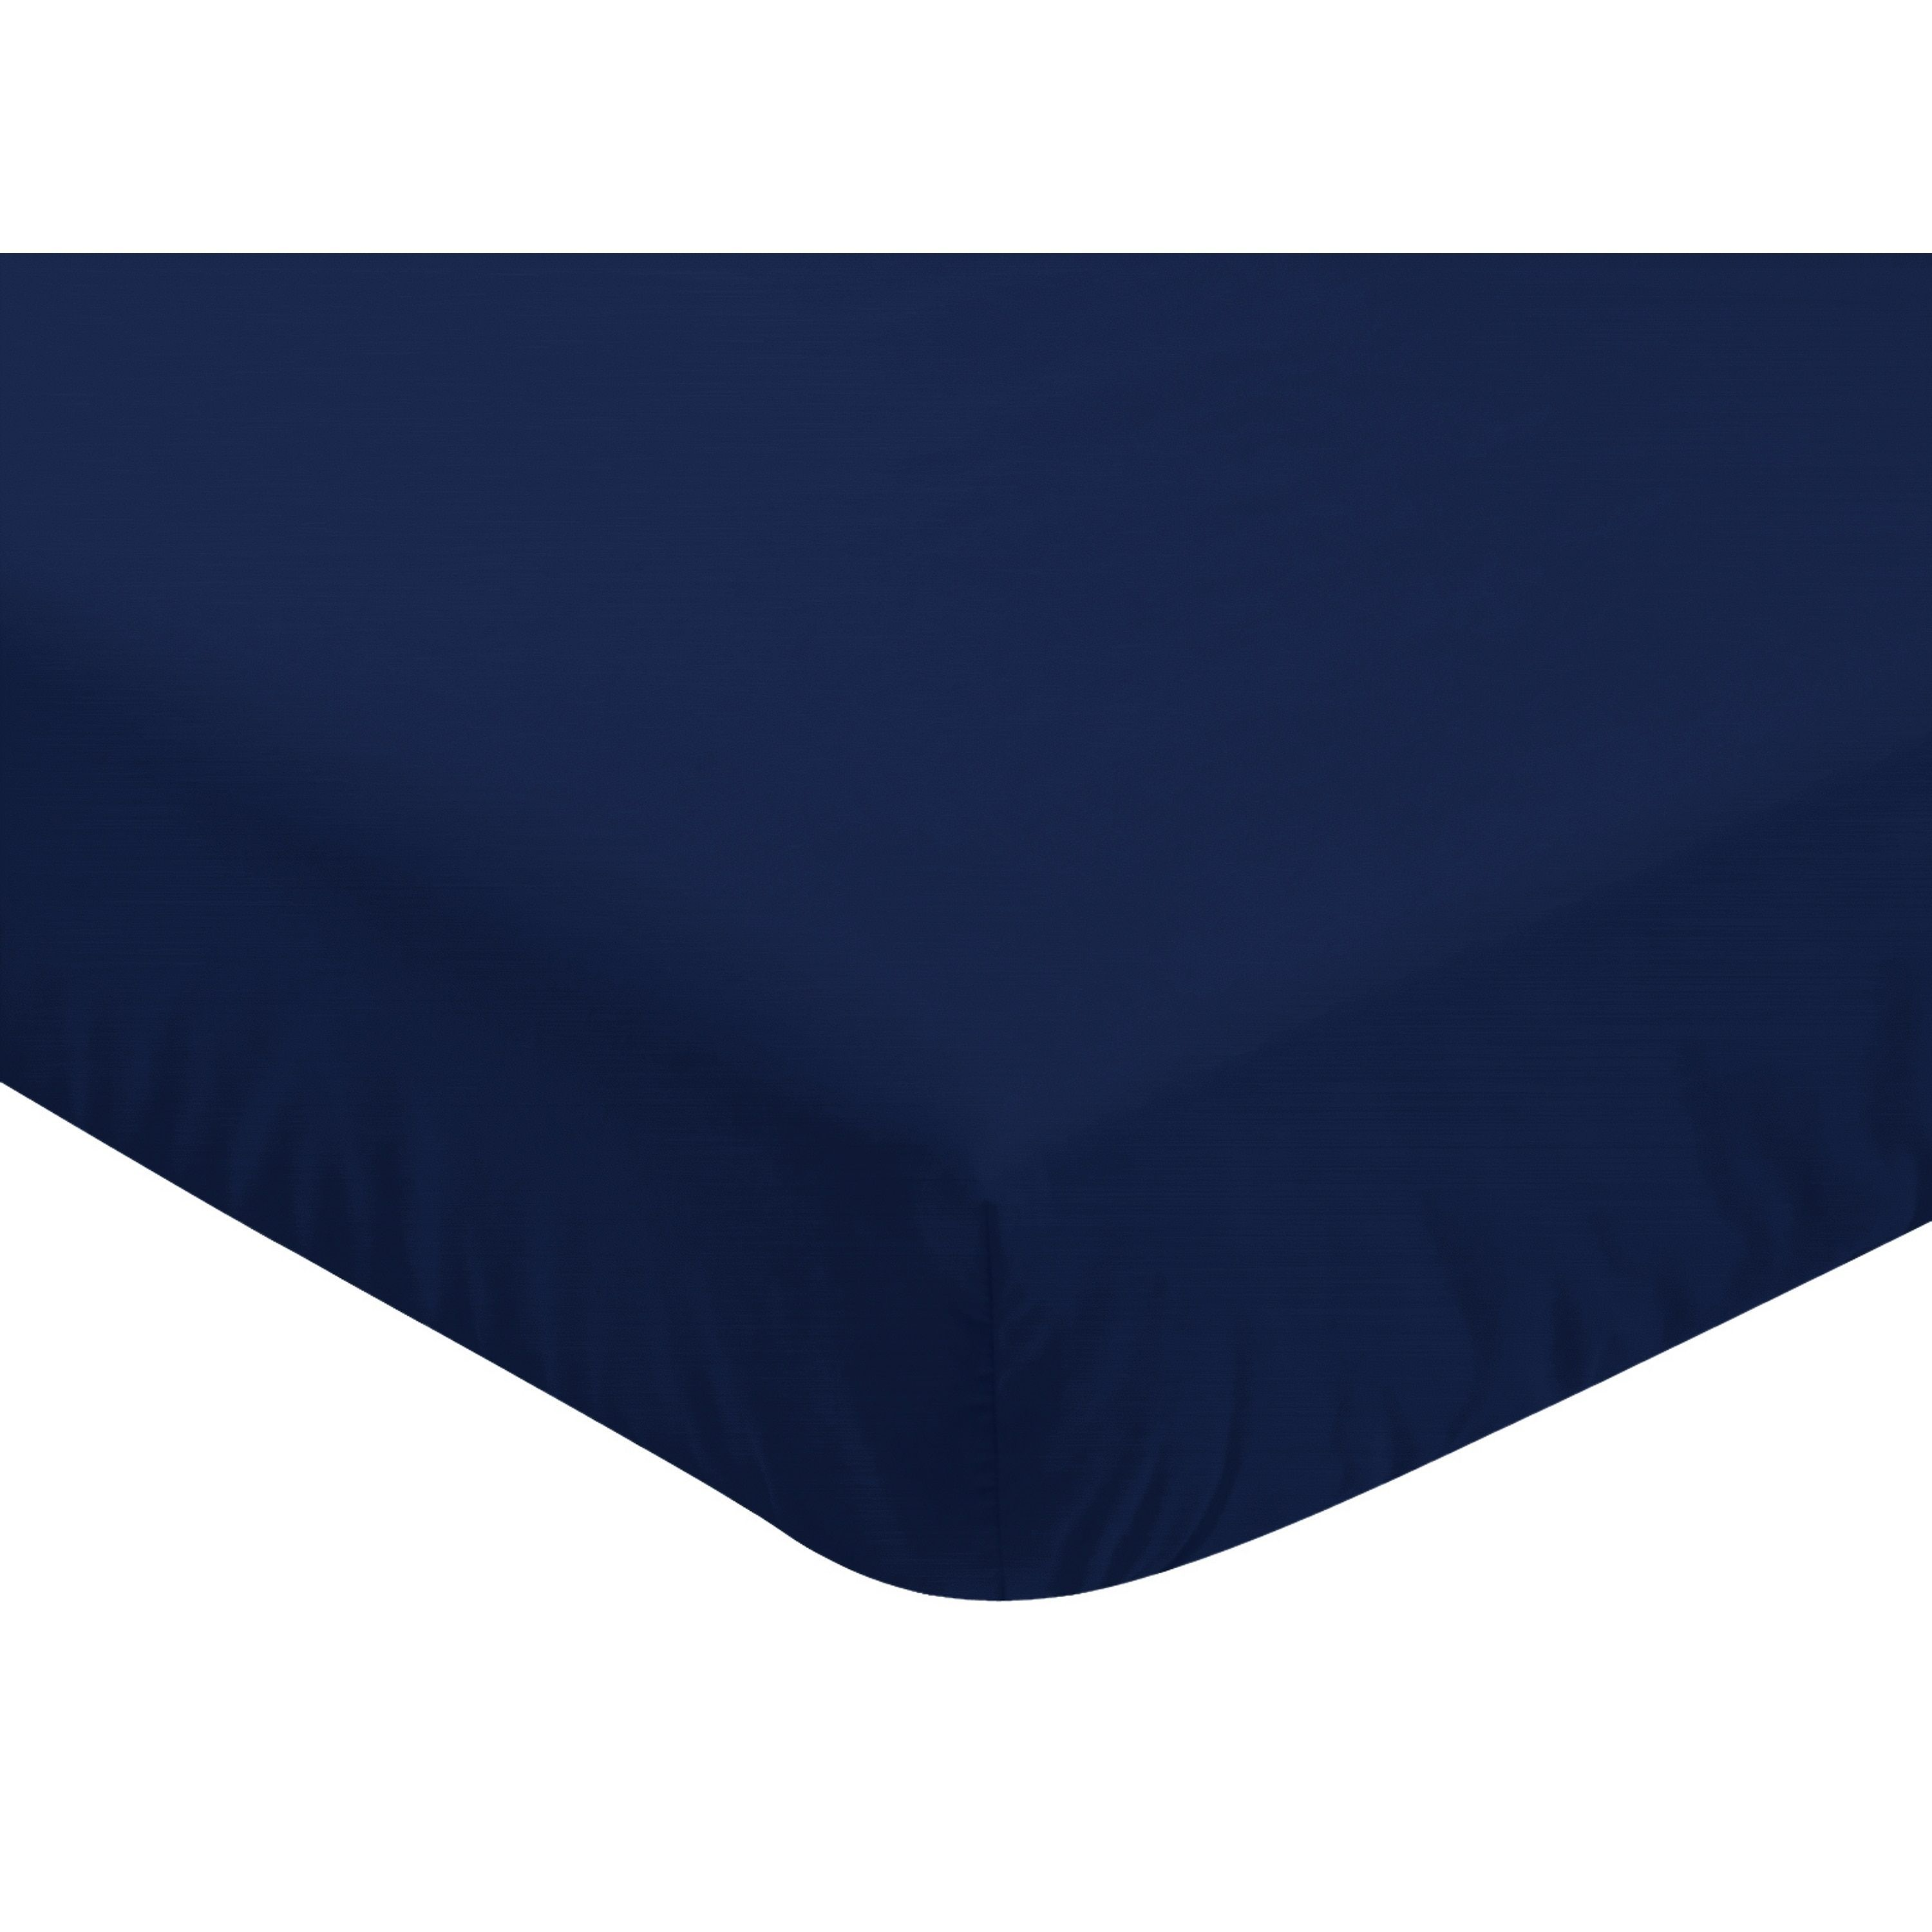 Mint Fitted Crib Sheet for Navy Blue Mint and Grey Woodsy Boys Baby//Toddler Bedding Set Collection